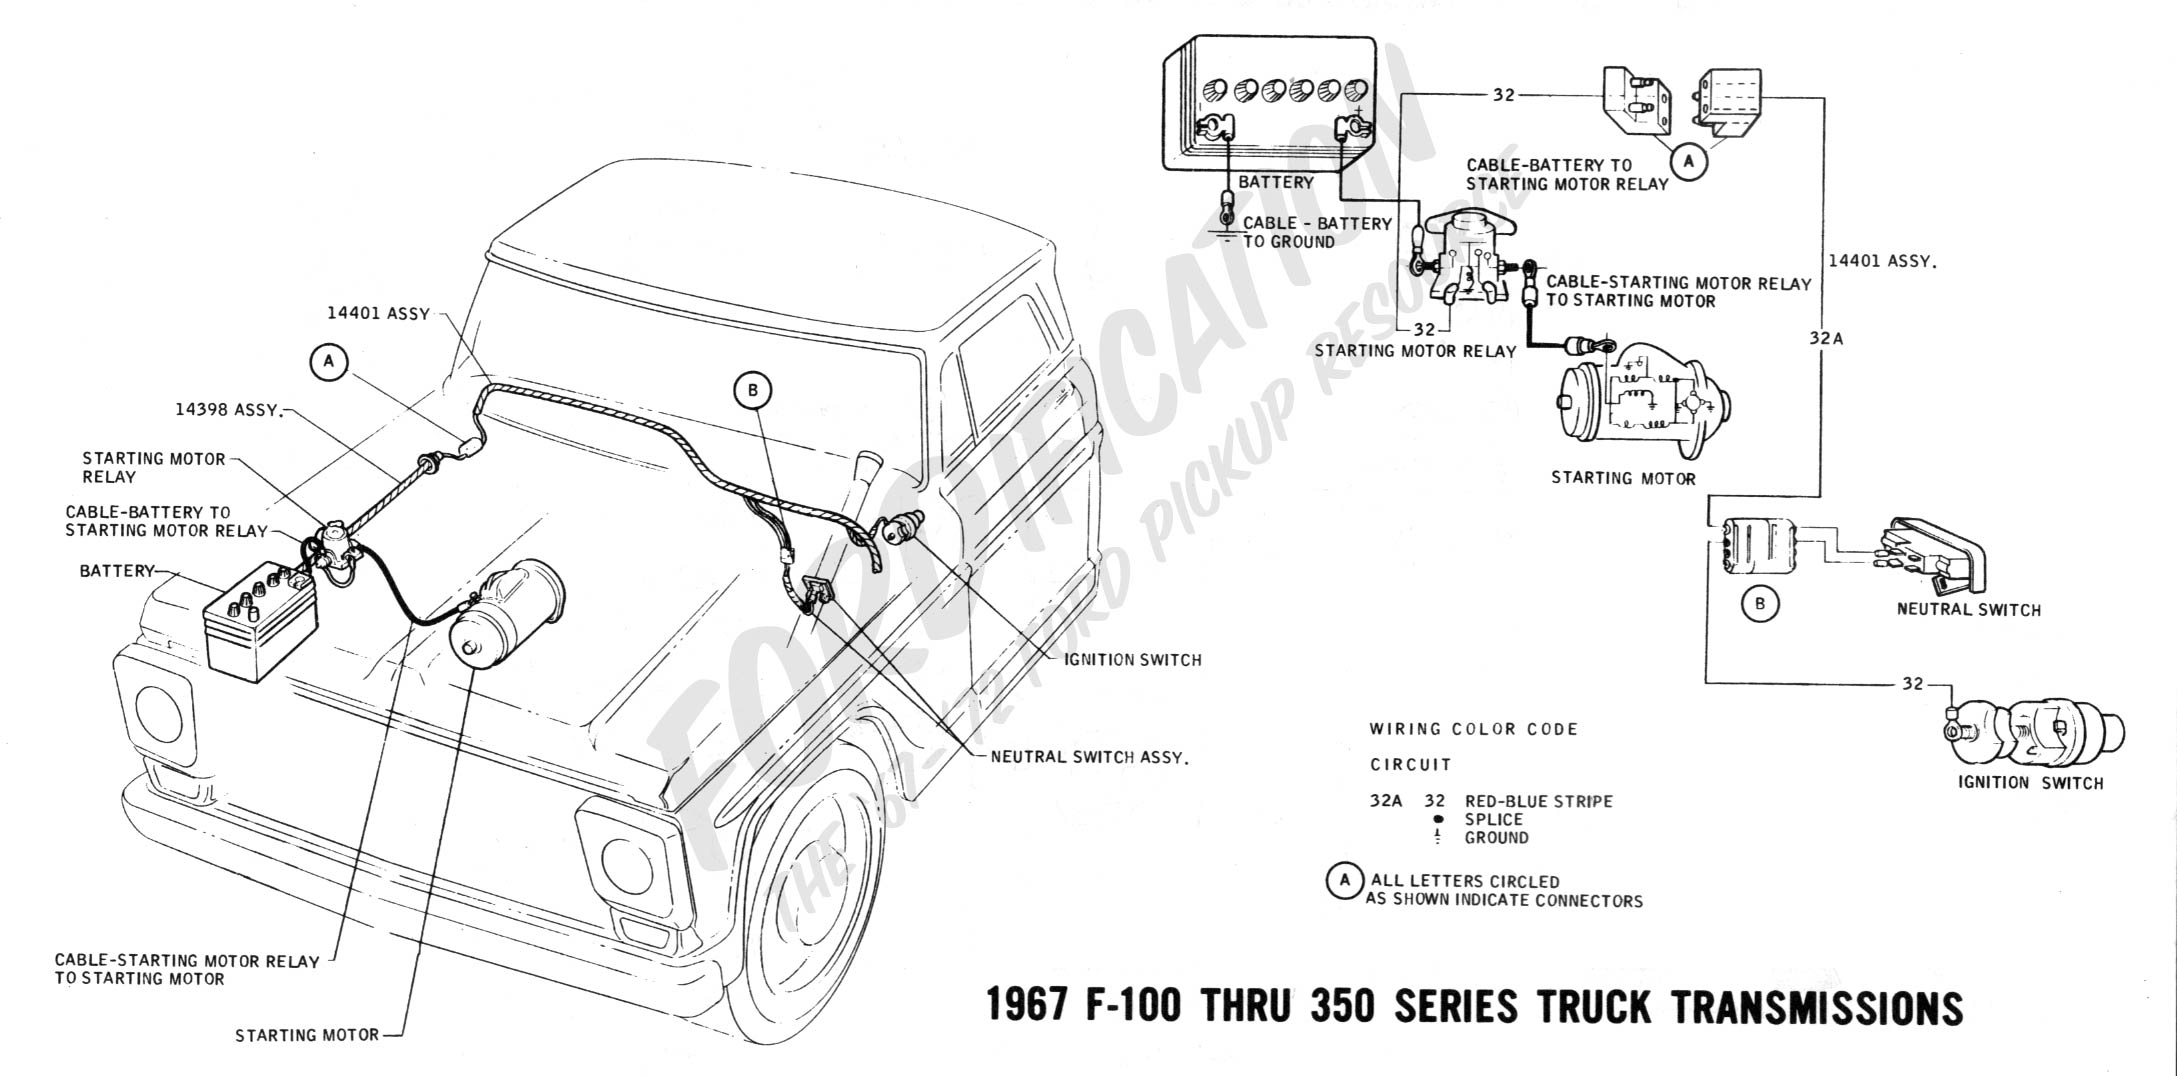 1988 Ford F800 Wiring Diagram Starting Know About Truck Technical Drawings And Schematics Section H